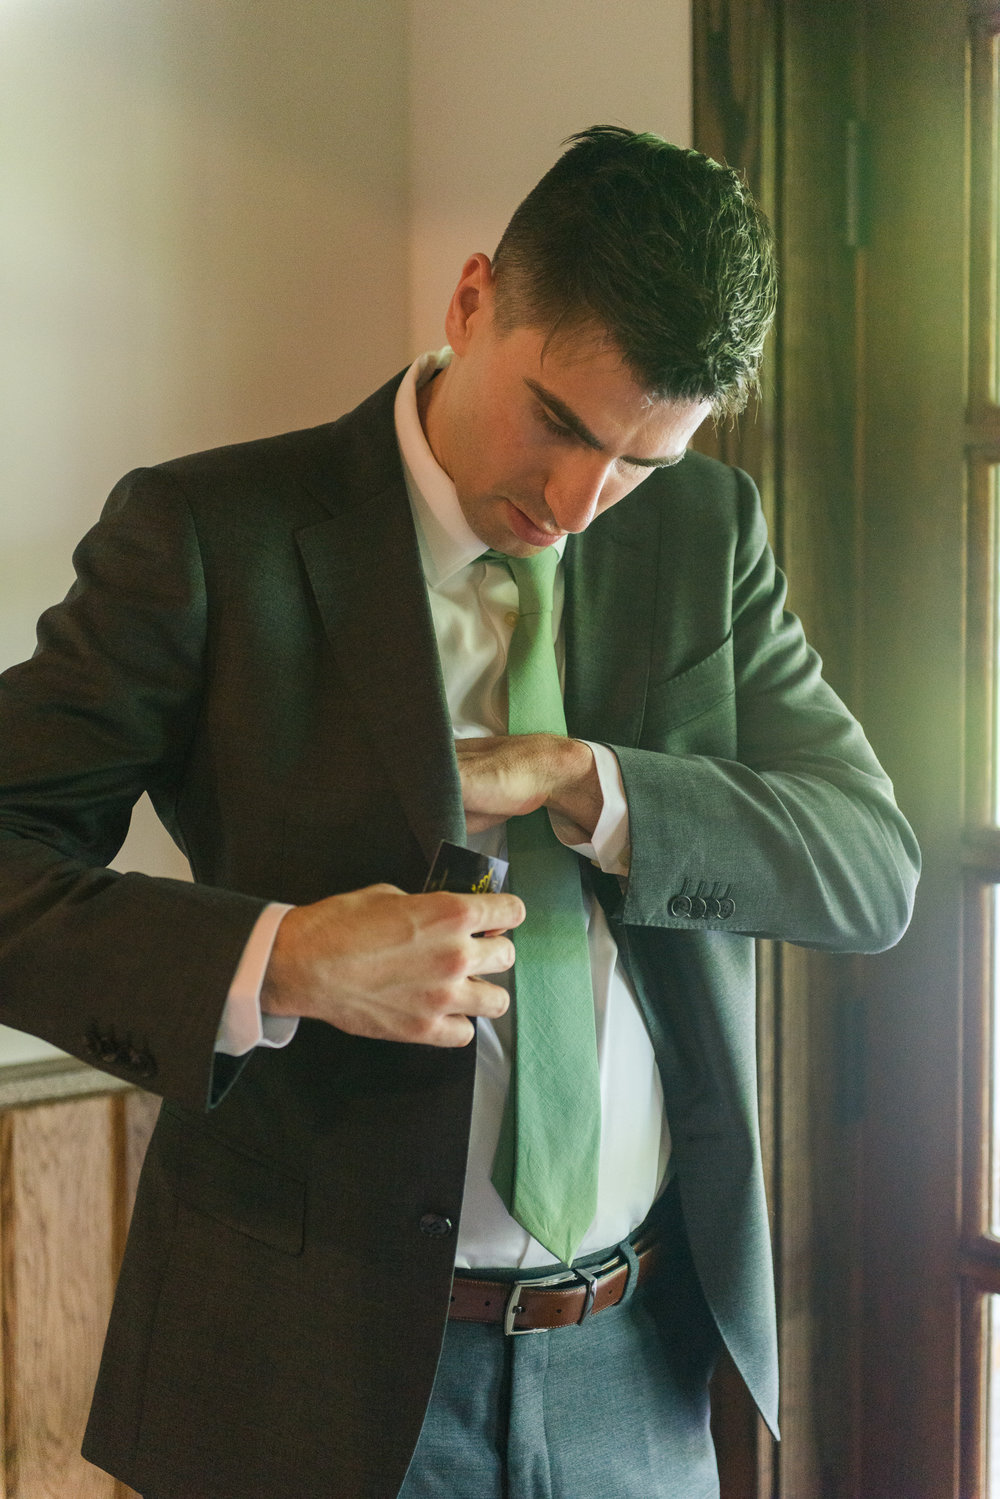 A groom gets ready for his wedding at Faithbrooke Barn and Vineyards in Luray, Virginia